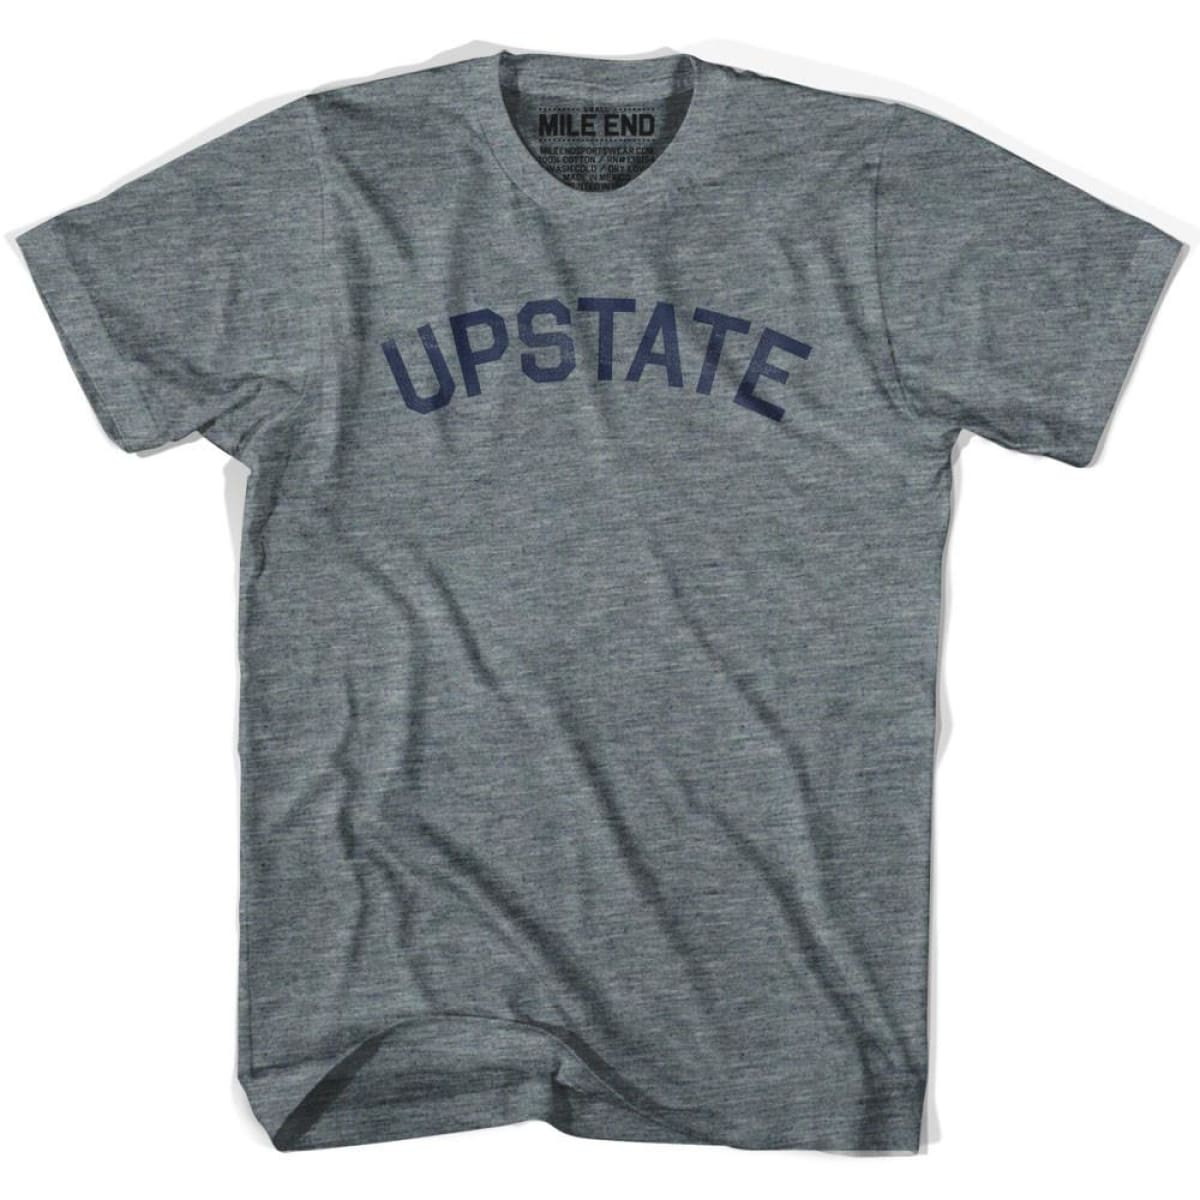 Upstate City Vintage T-shirt - Athletic Grey / Adult X-Small - Mile End City